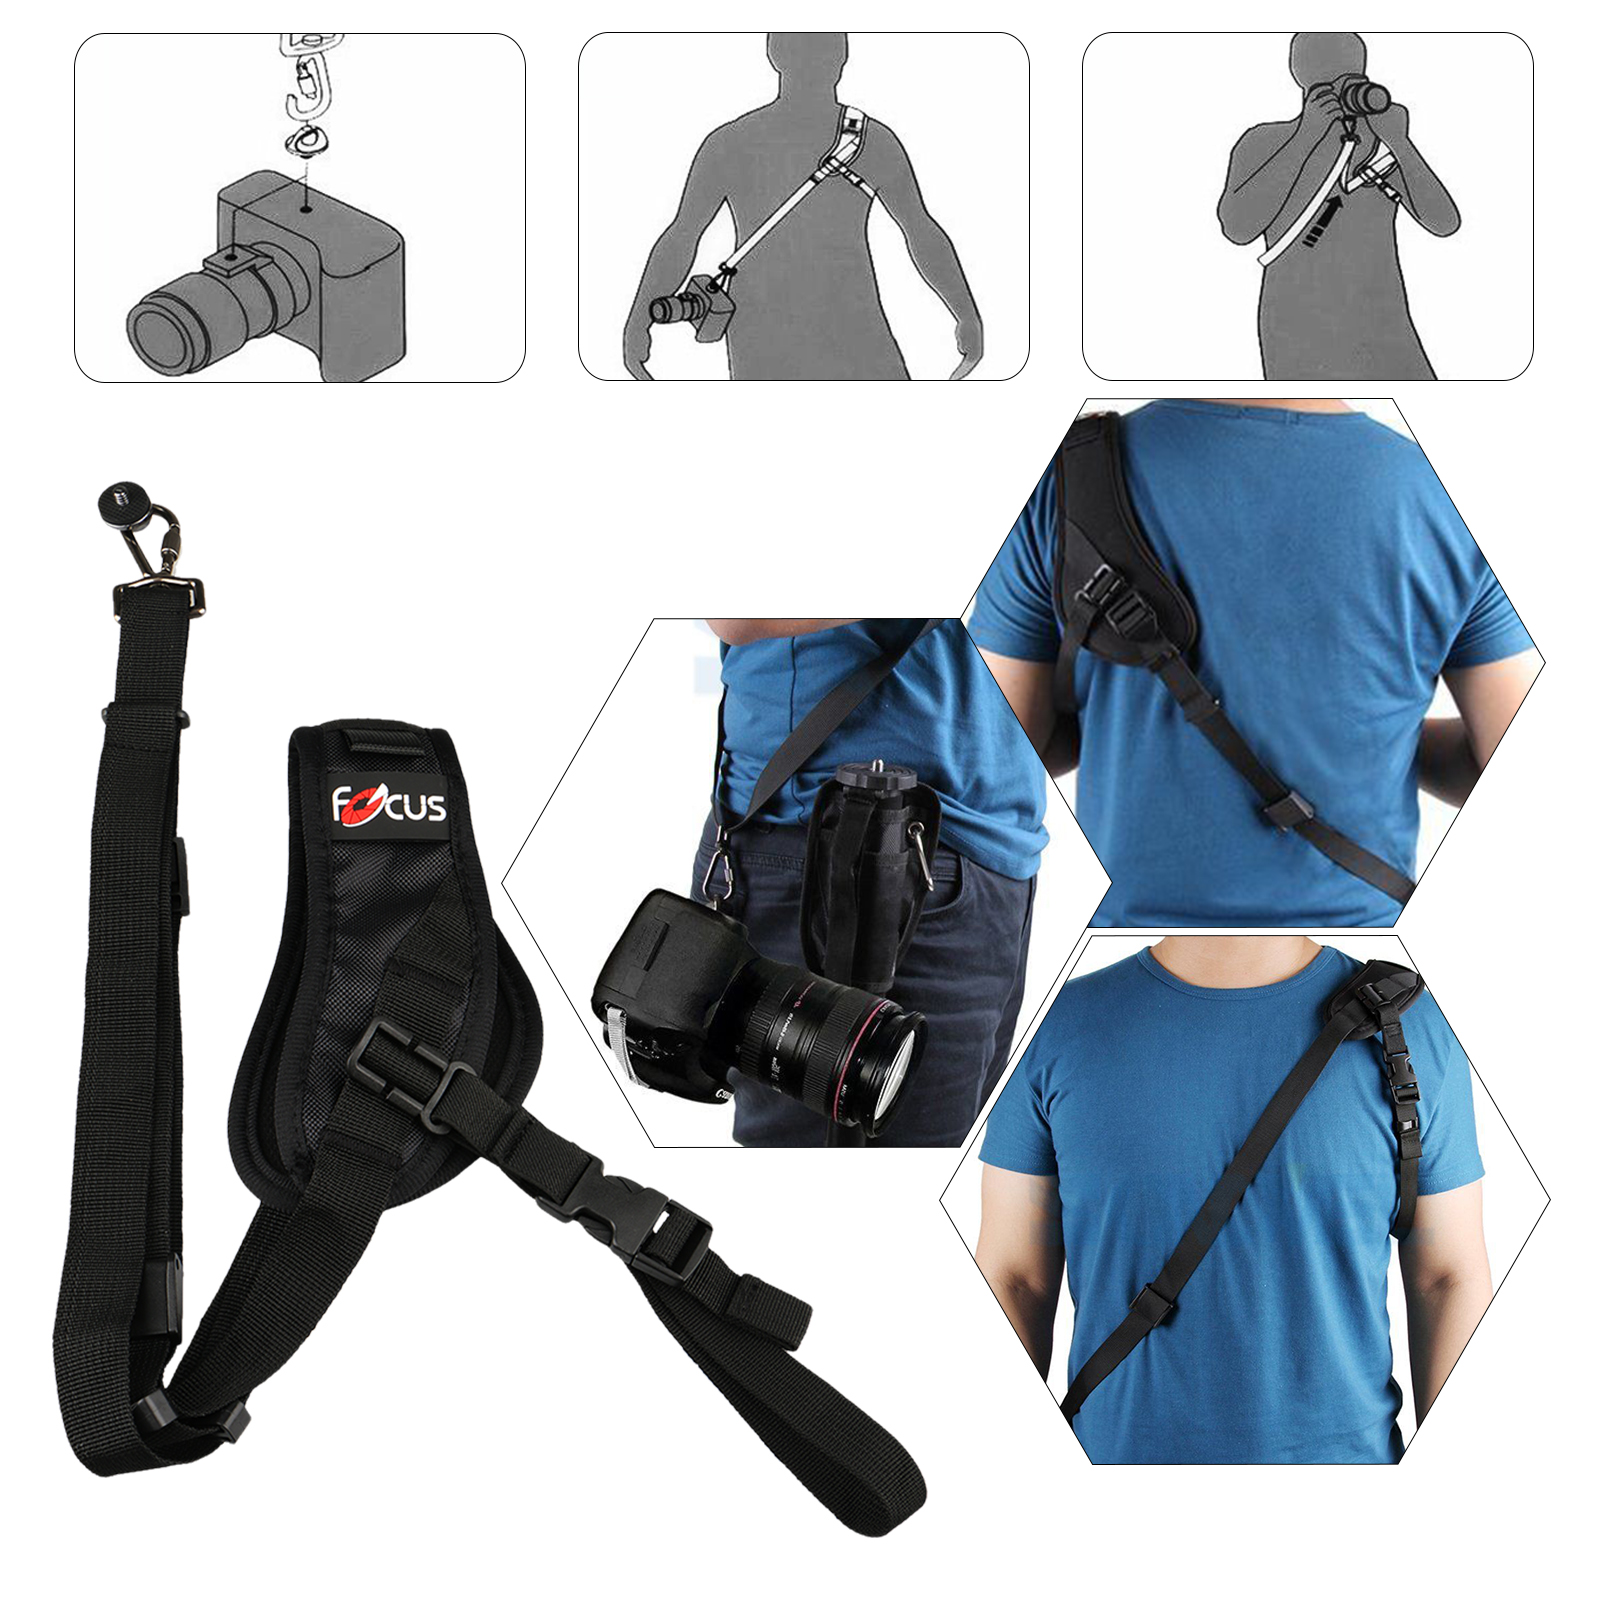 Camera Shoulder Neck Strap, Quick Rapid Shoulder Sling Belt Neck Strap Professional Single Shoulder Camera strap camcorder for DSLR SLR Canon Nikon Sony Panasonic